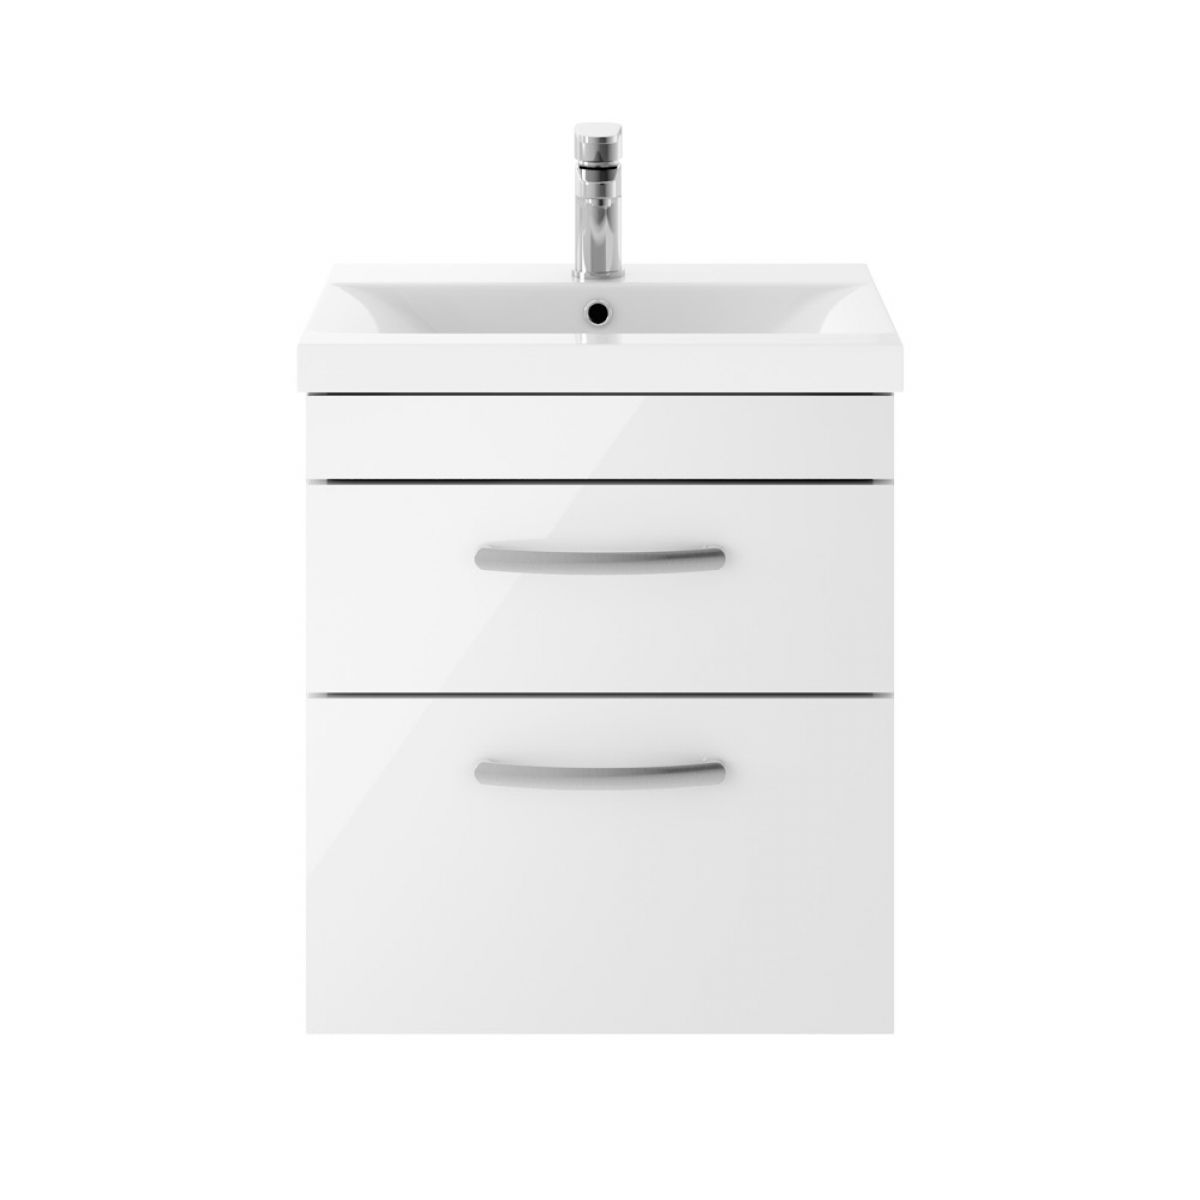 Premier Athena Gloss White 2 Drawer Wall Hung Vanity Unit 500mm wuth Mid Edge Basin